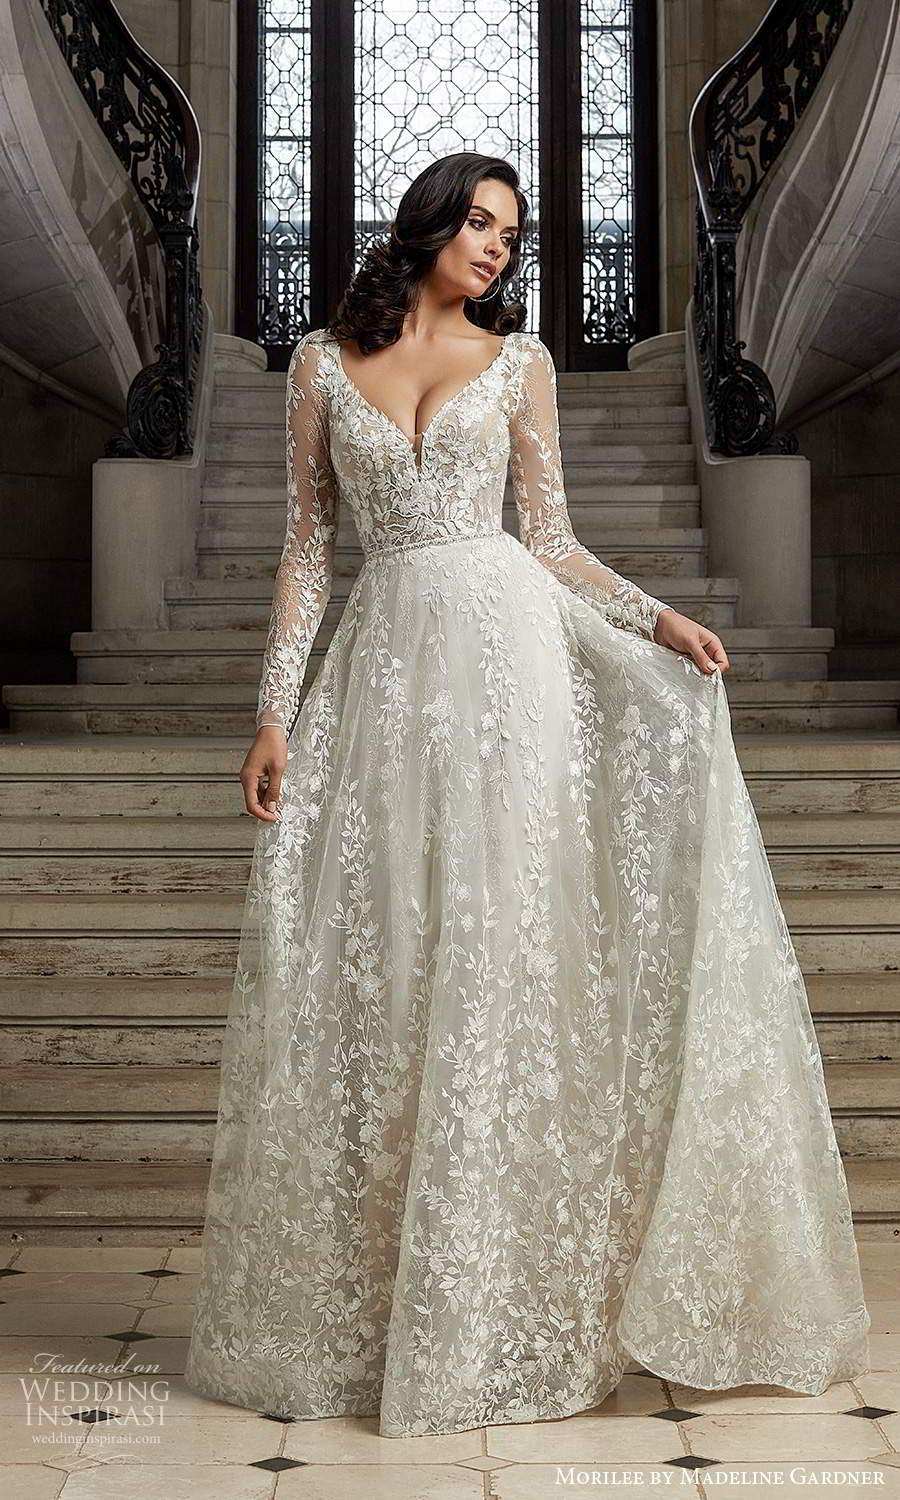 morilee madeline gardner spring 2022 bridal sheer long sleeves v neckline fully embellished lace a line ball gown wedding dress chapel train (7) mv